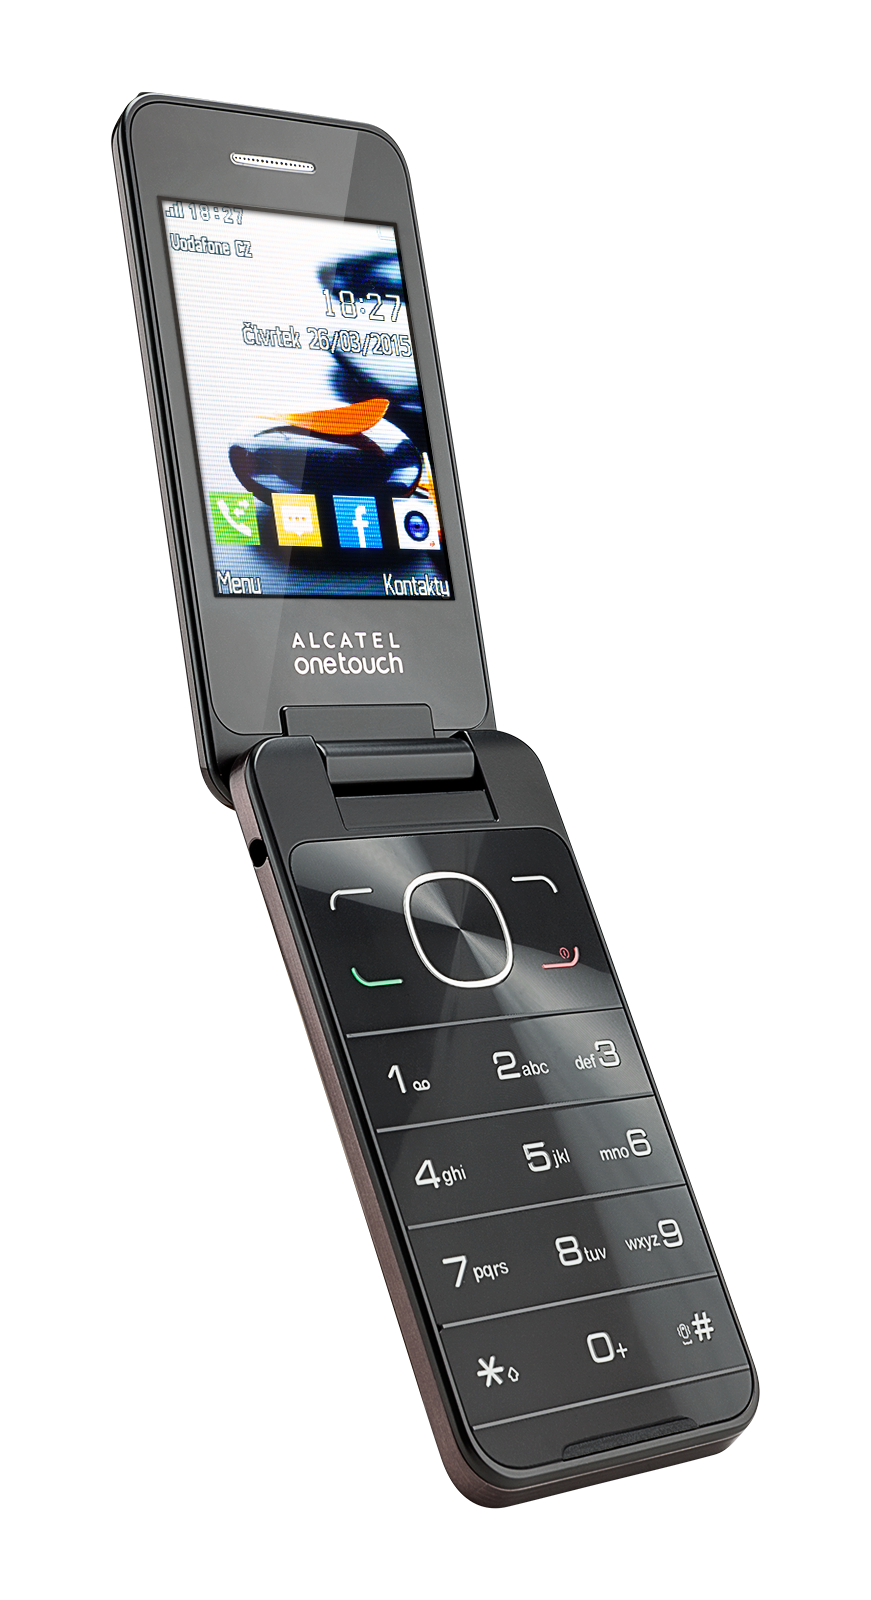 alcatel one touch flip phone user manual